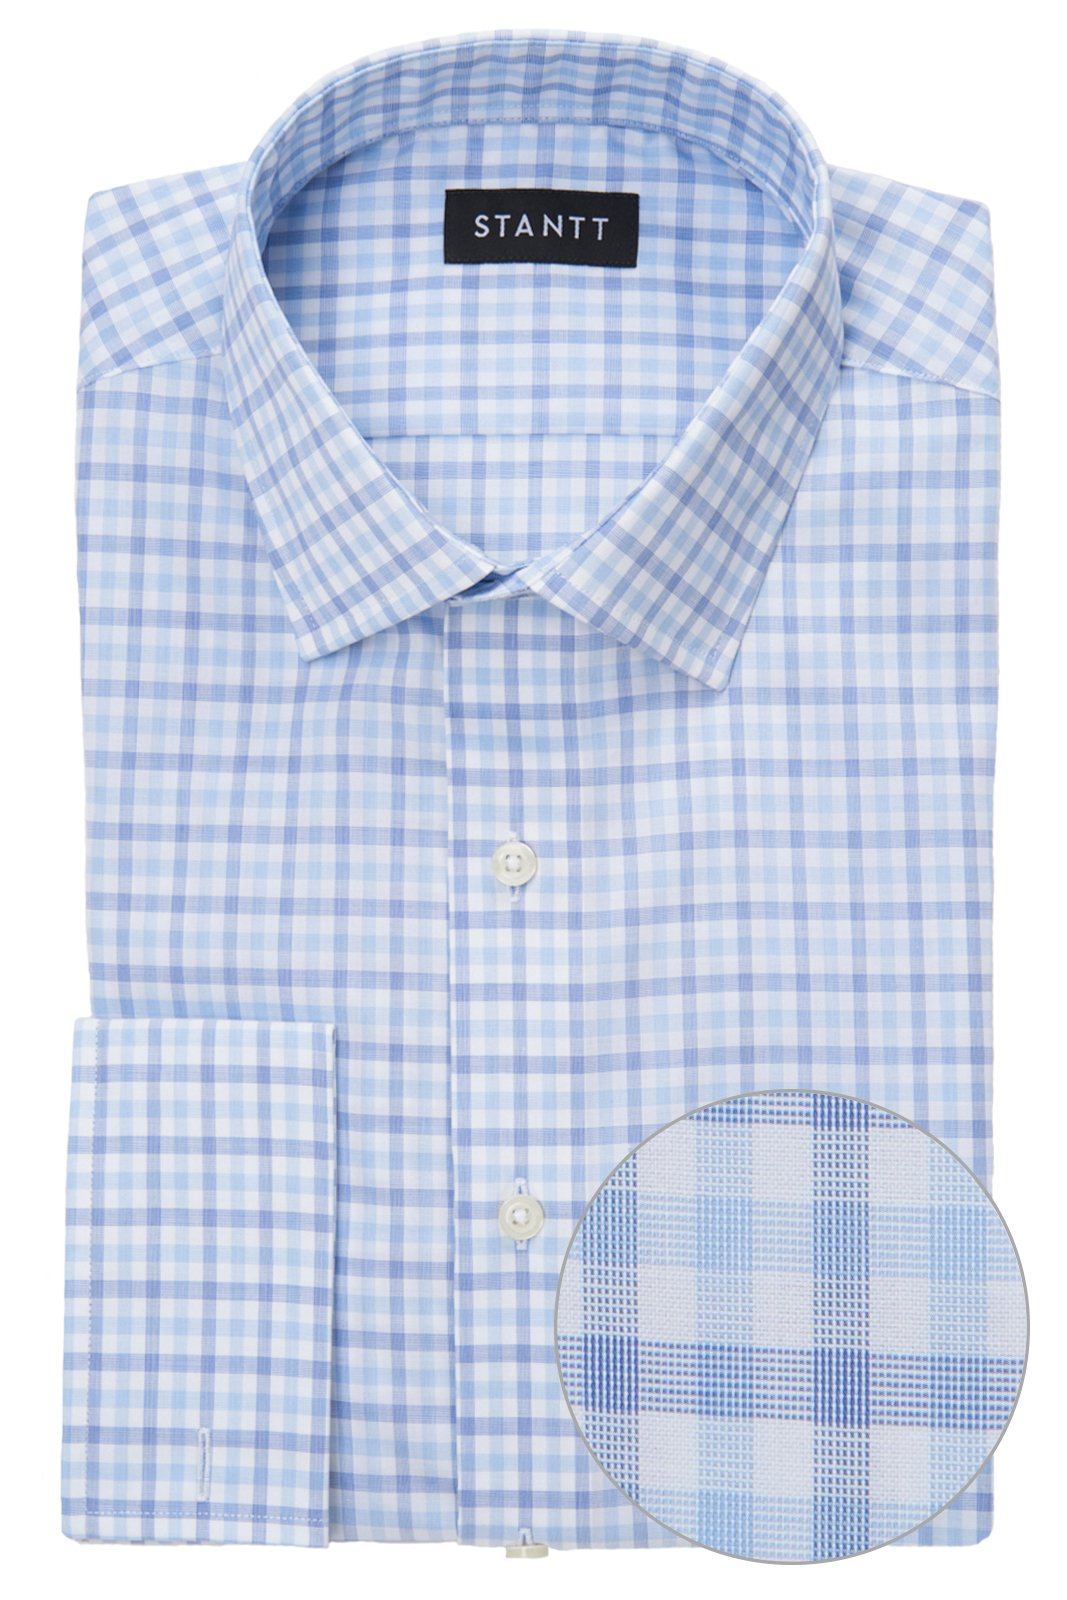 Wrinkle-Resistant Blue Cross Weave Tattersall: Semi-Spread Collar, Barrel Cuff